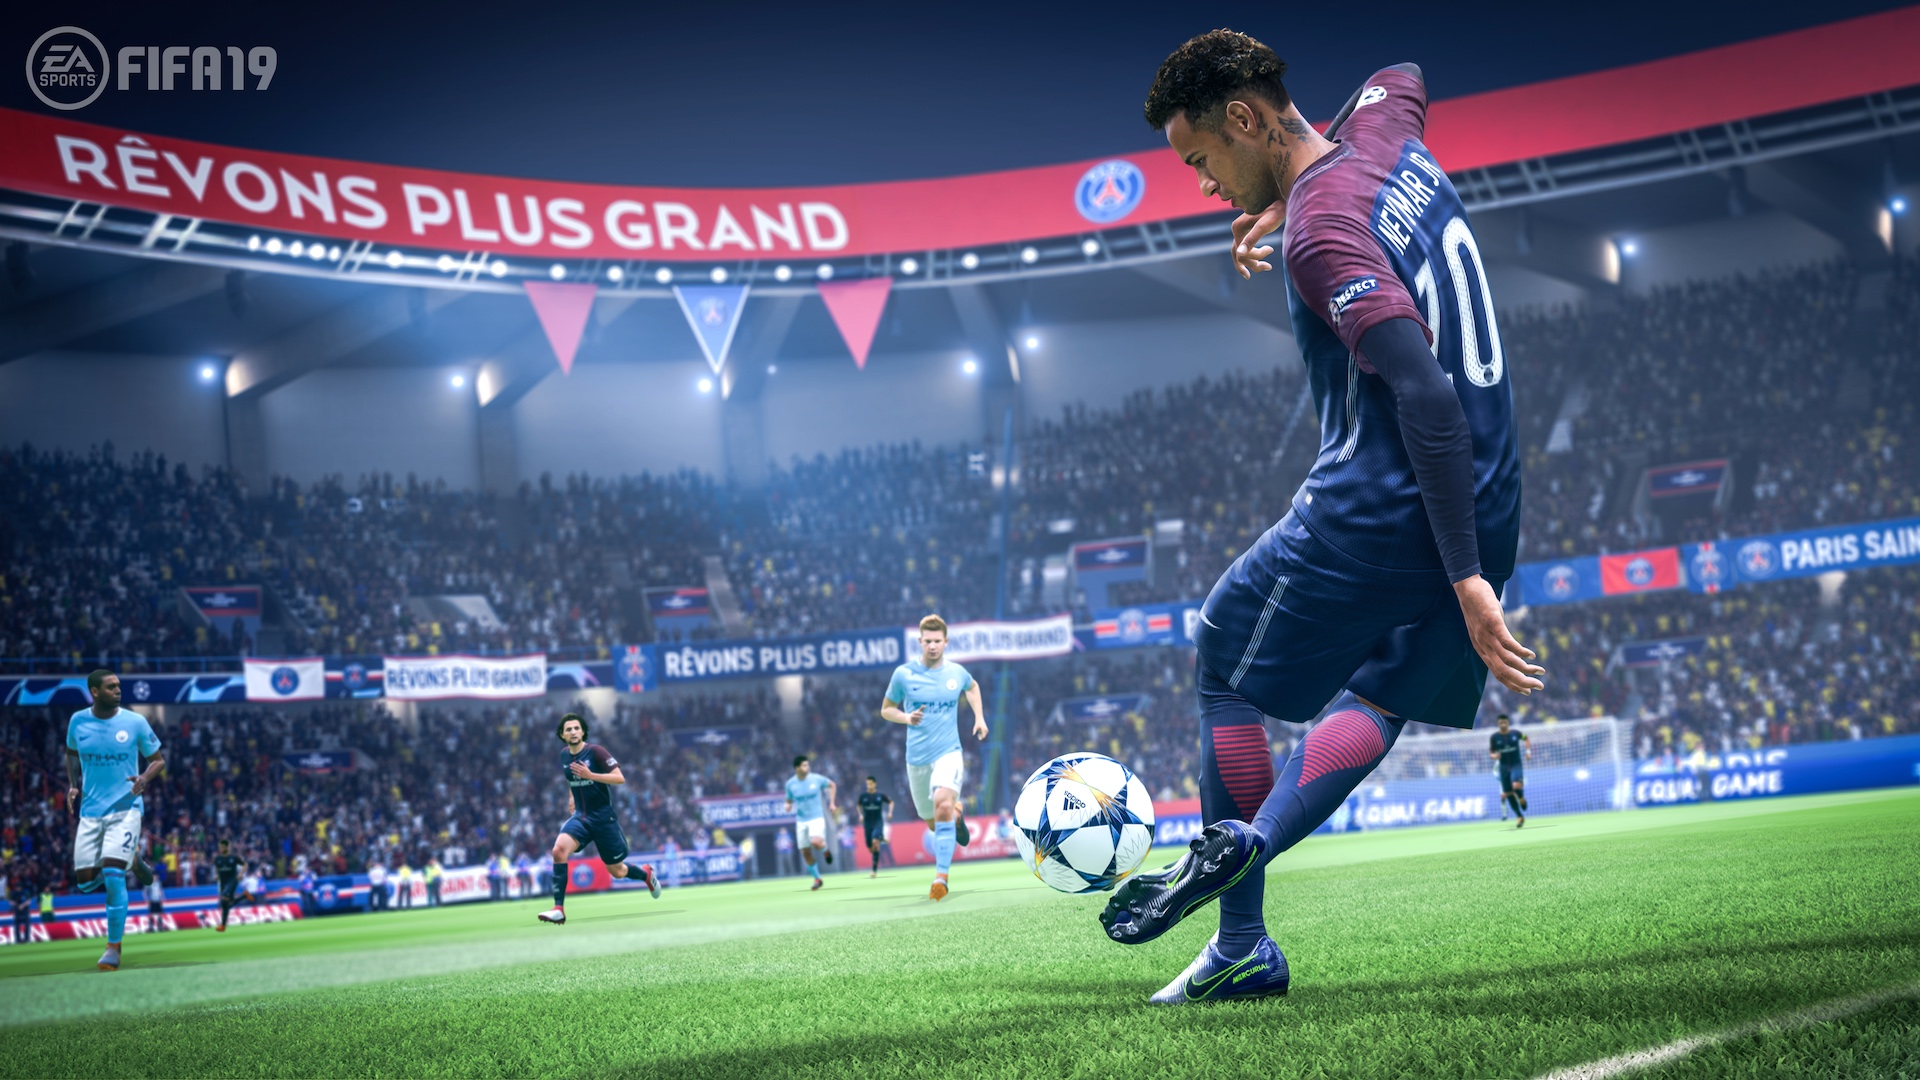 bb23d2ff2ec It s that time of year again  FIFA demo season. The demo s 2019 installment  for